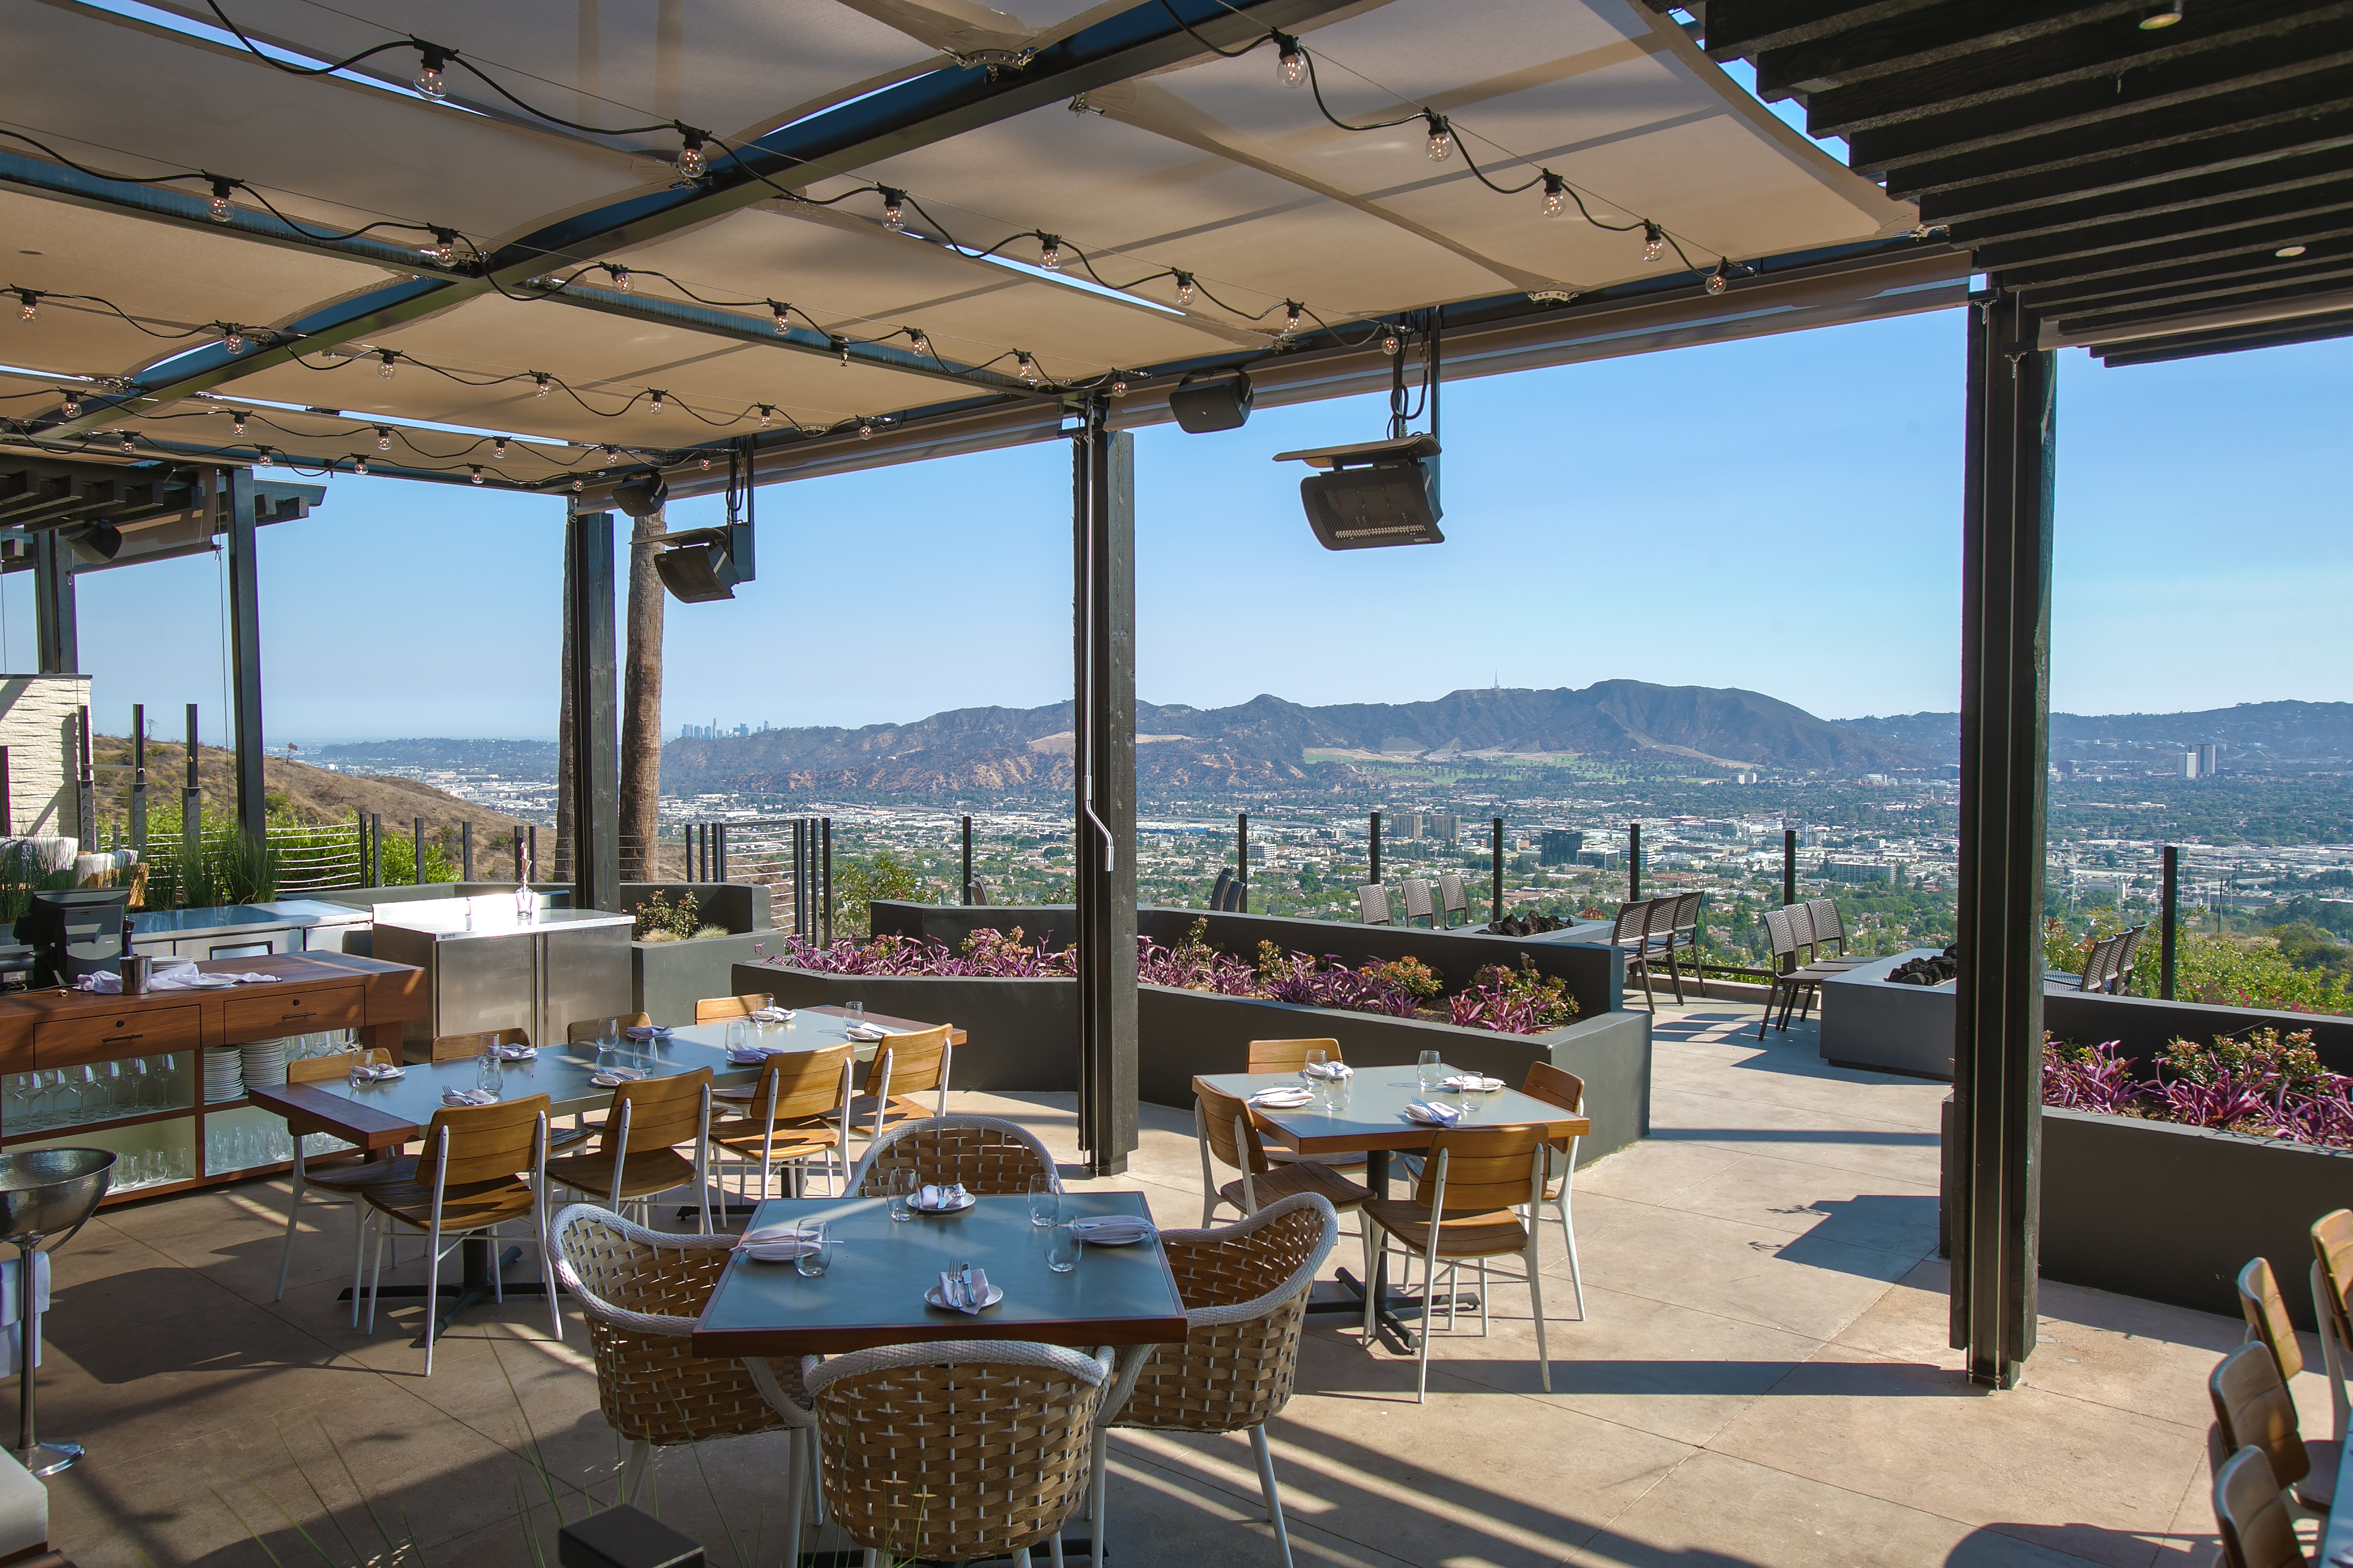 18 La Restaurants With Great Views Los Angeles The Infatuation